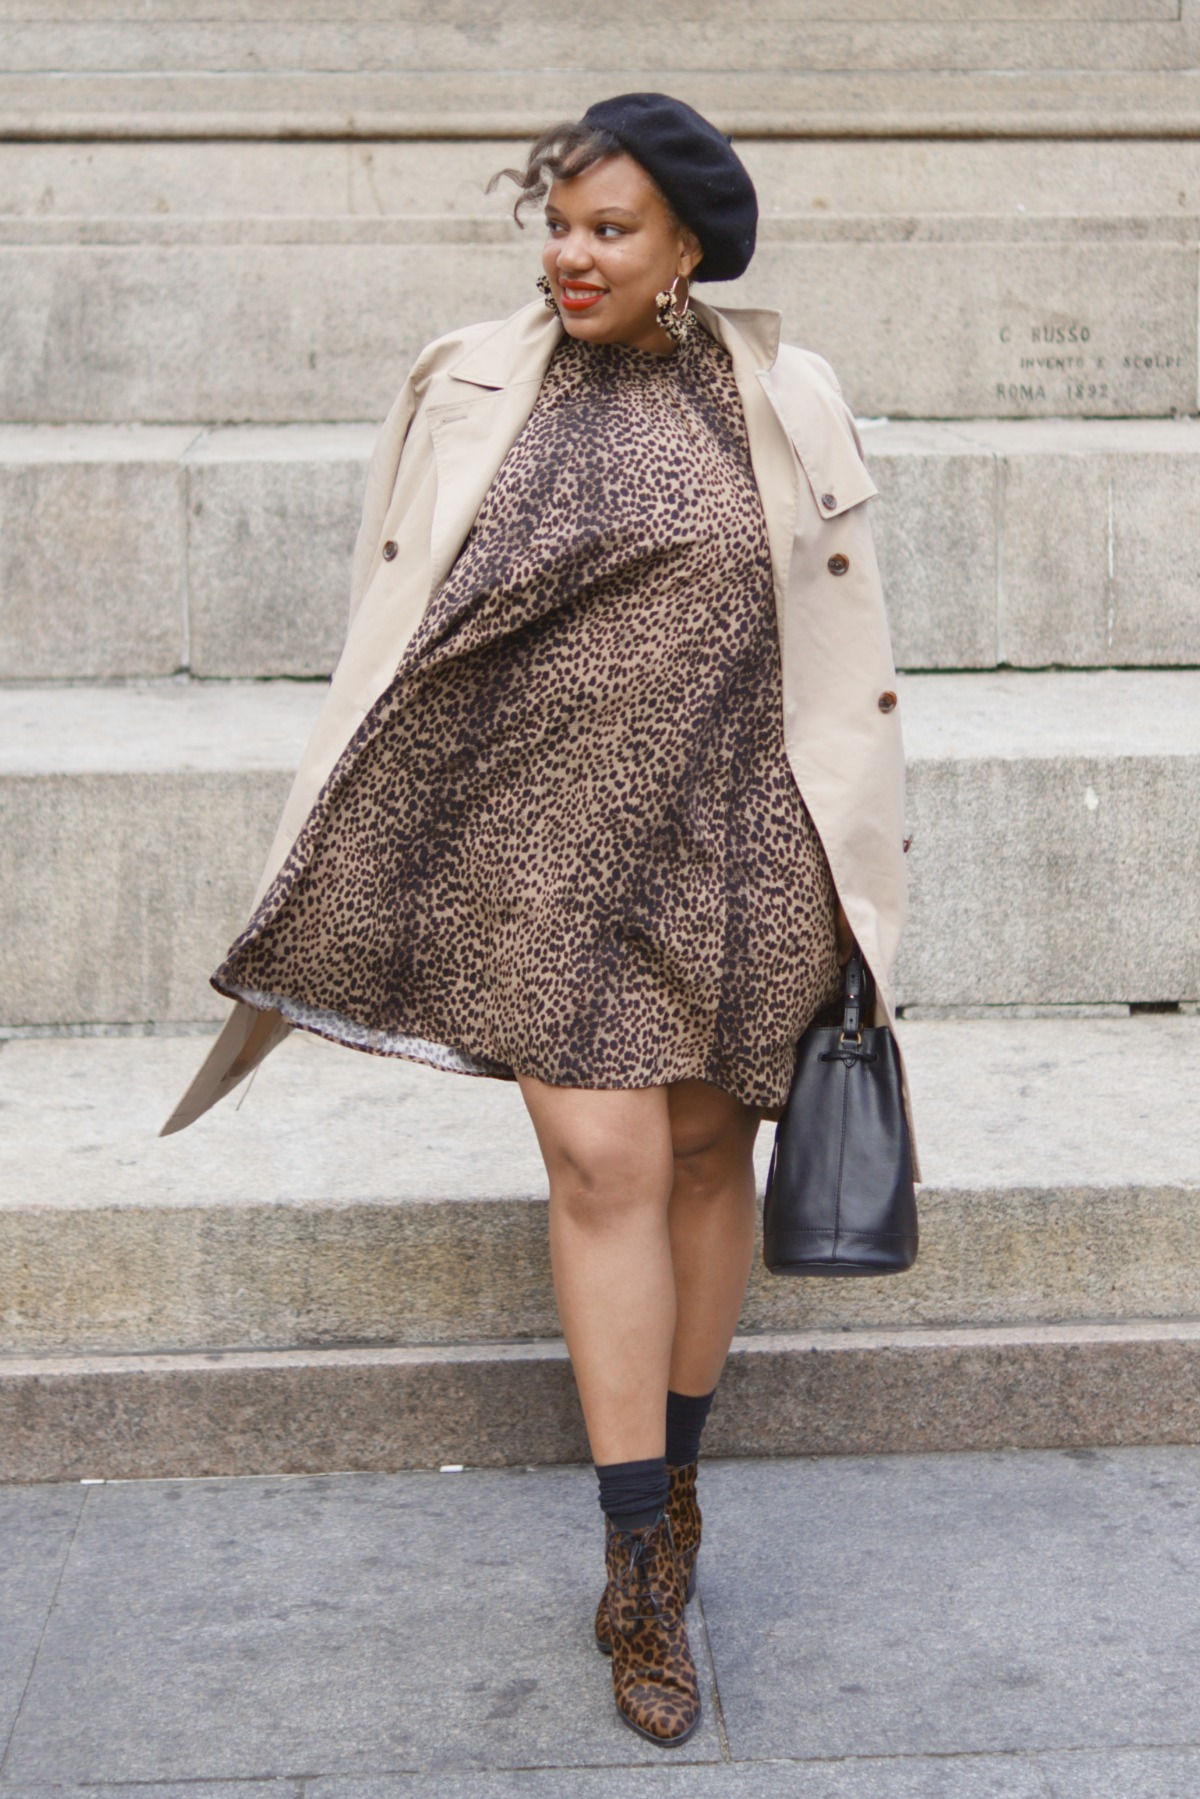 Leopard Print H&M Dress, closet confections, nyc fashion blogger